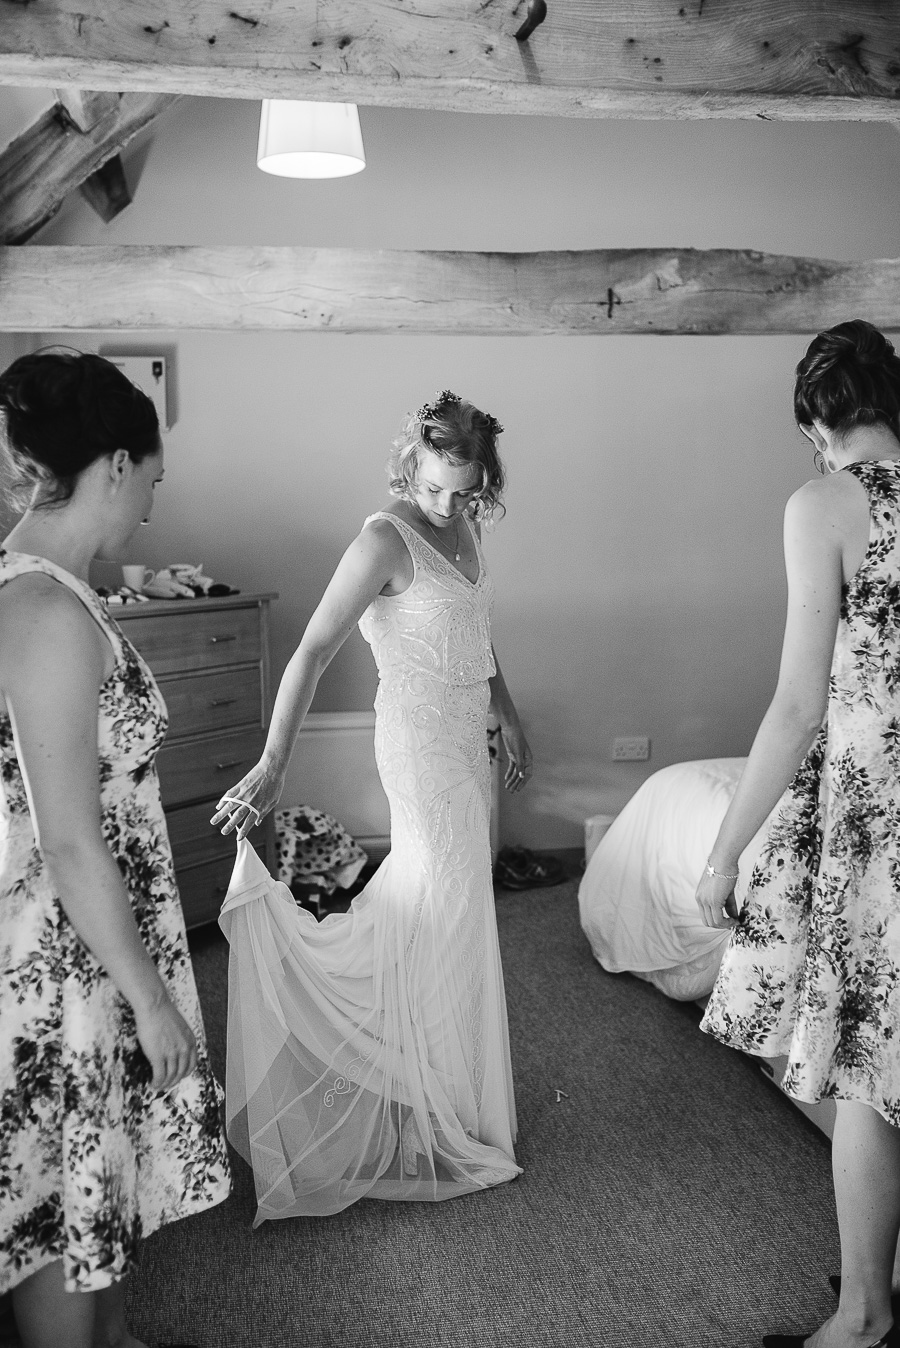 Wedding Photography - Folly Farm Centre Bristol - Our Beautiful Adventure Photography - Bridal Preparations